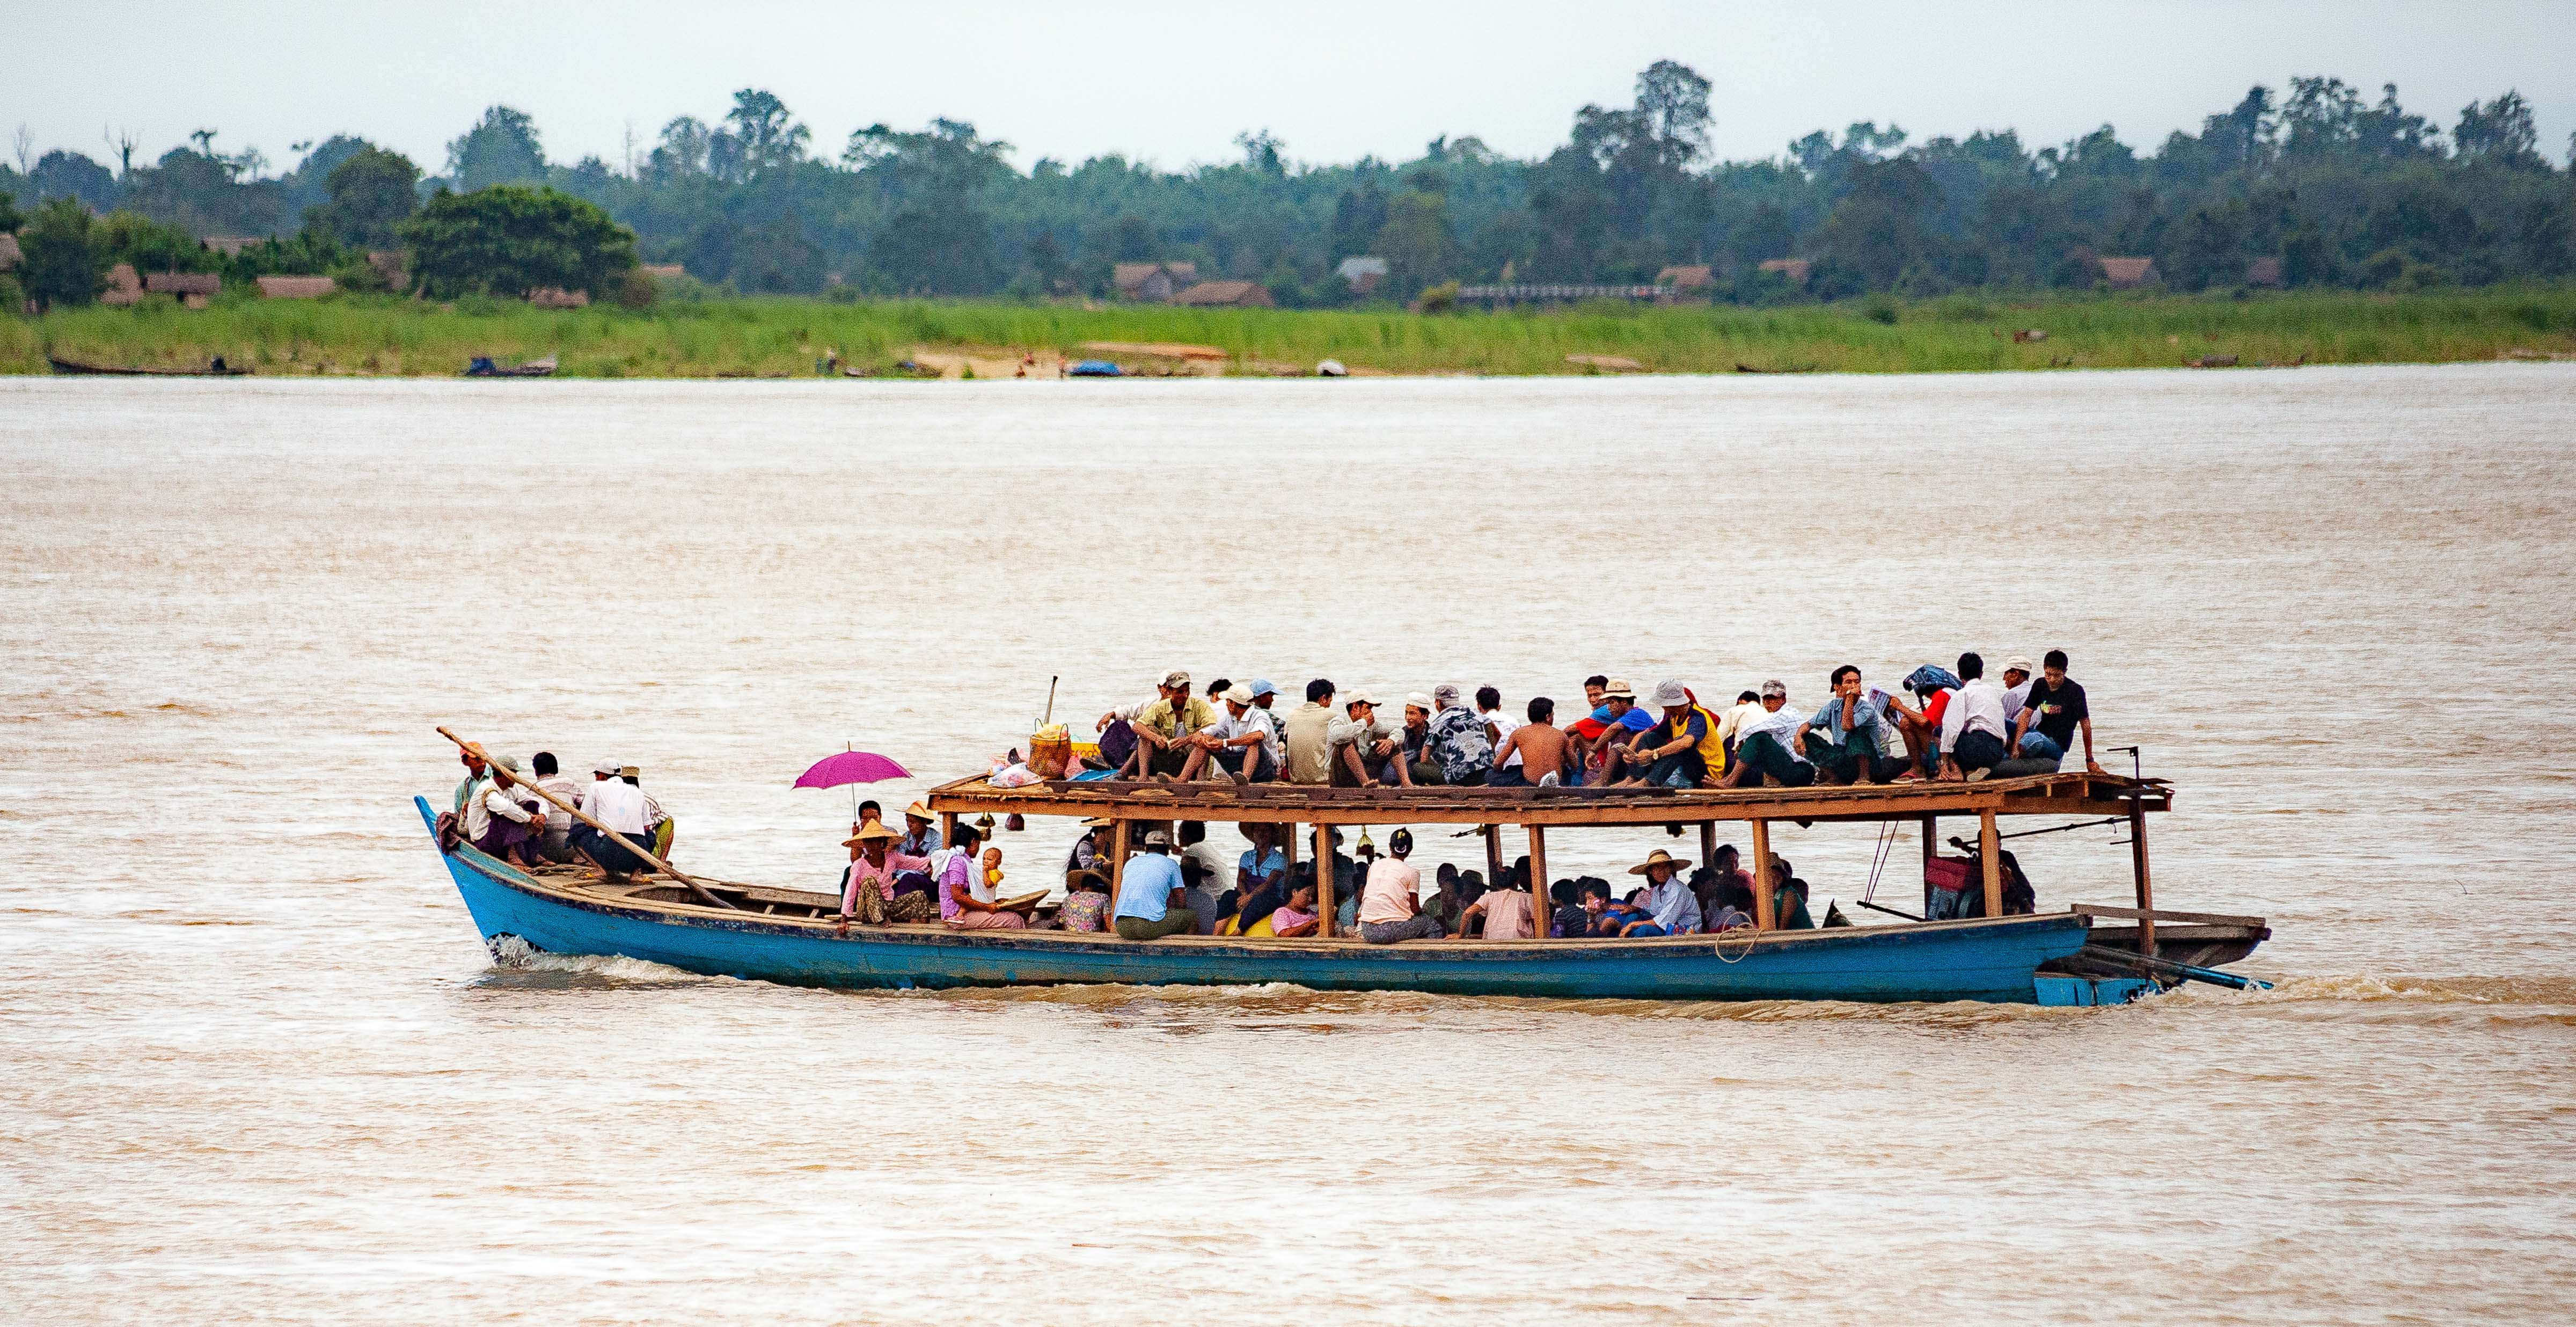 Myanmar, Unknown Prov, Packed Boat, 2009, IMG 3722